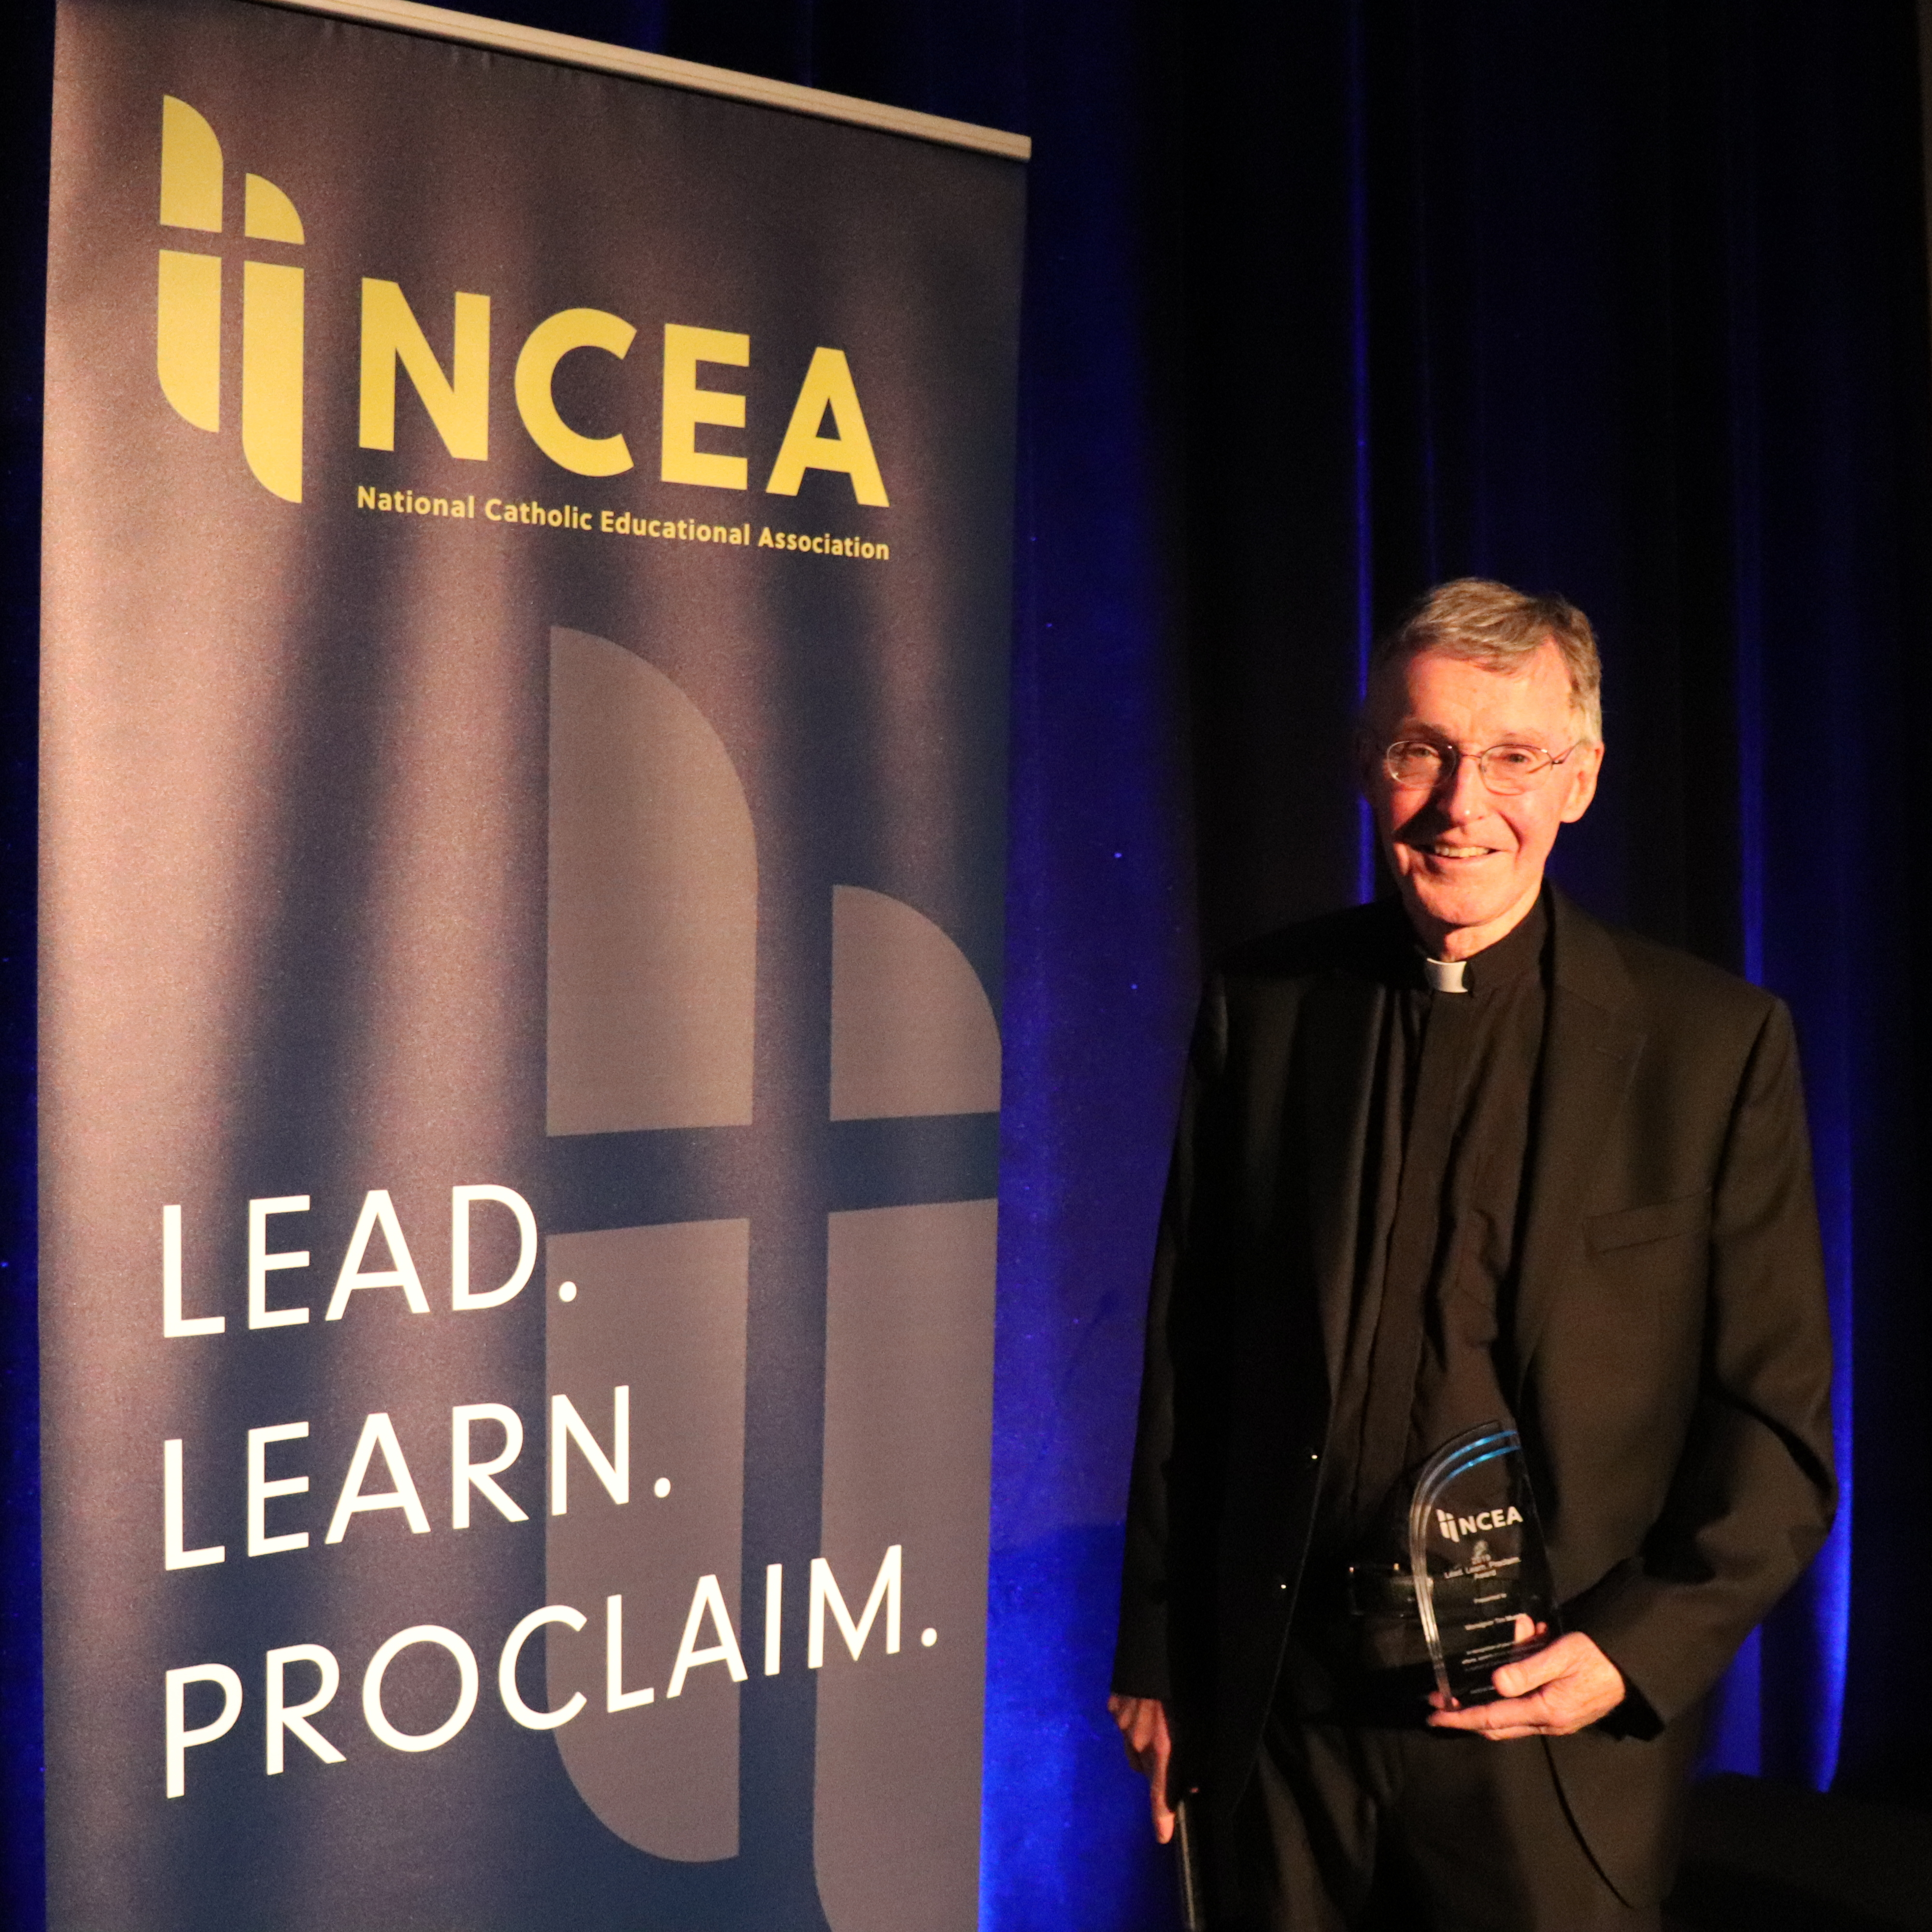 Msgr. Murphy '58 receives Lead. Learn. Proclaim. Award